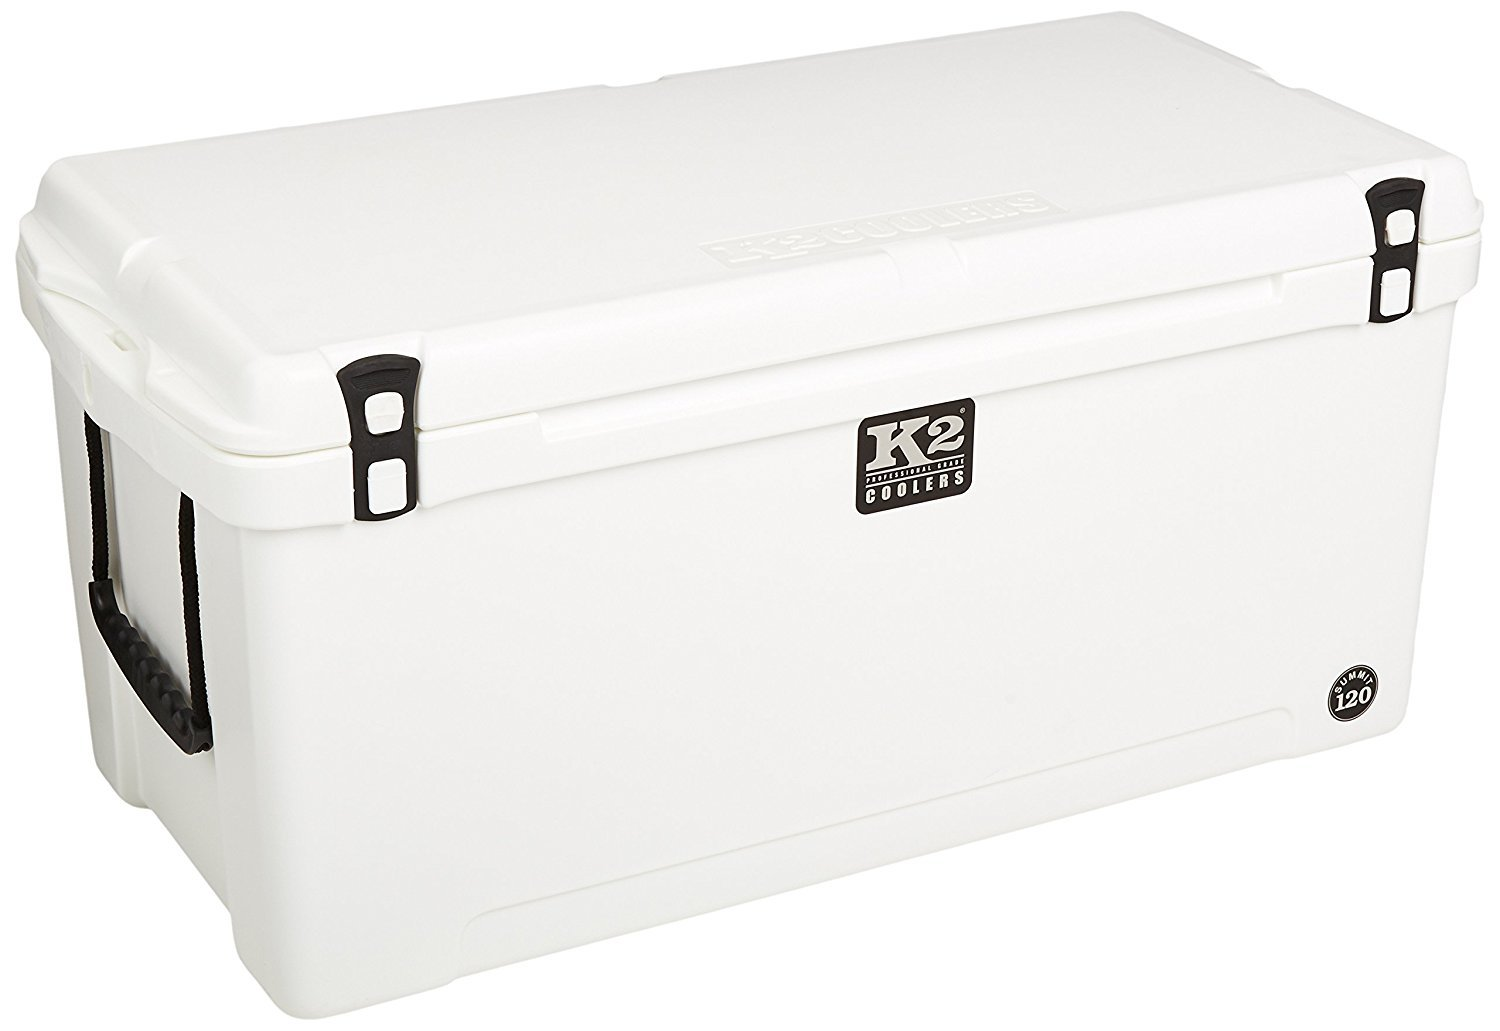 K2 Coolers Summit 120 Cooler